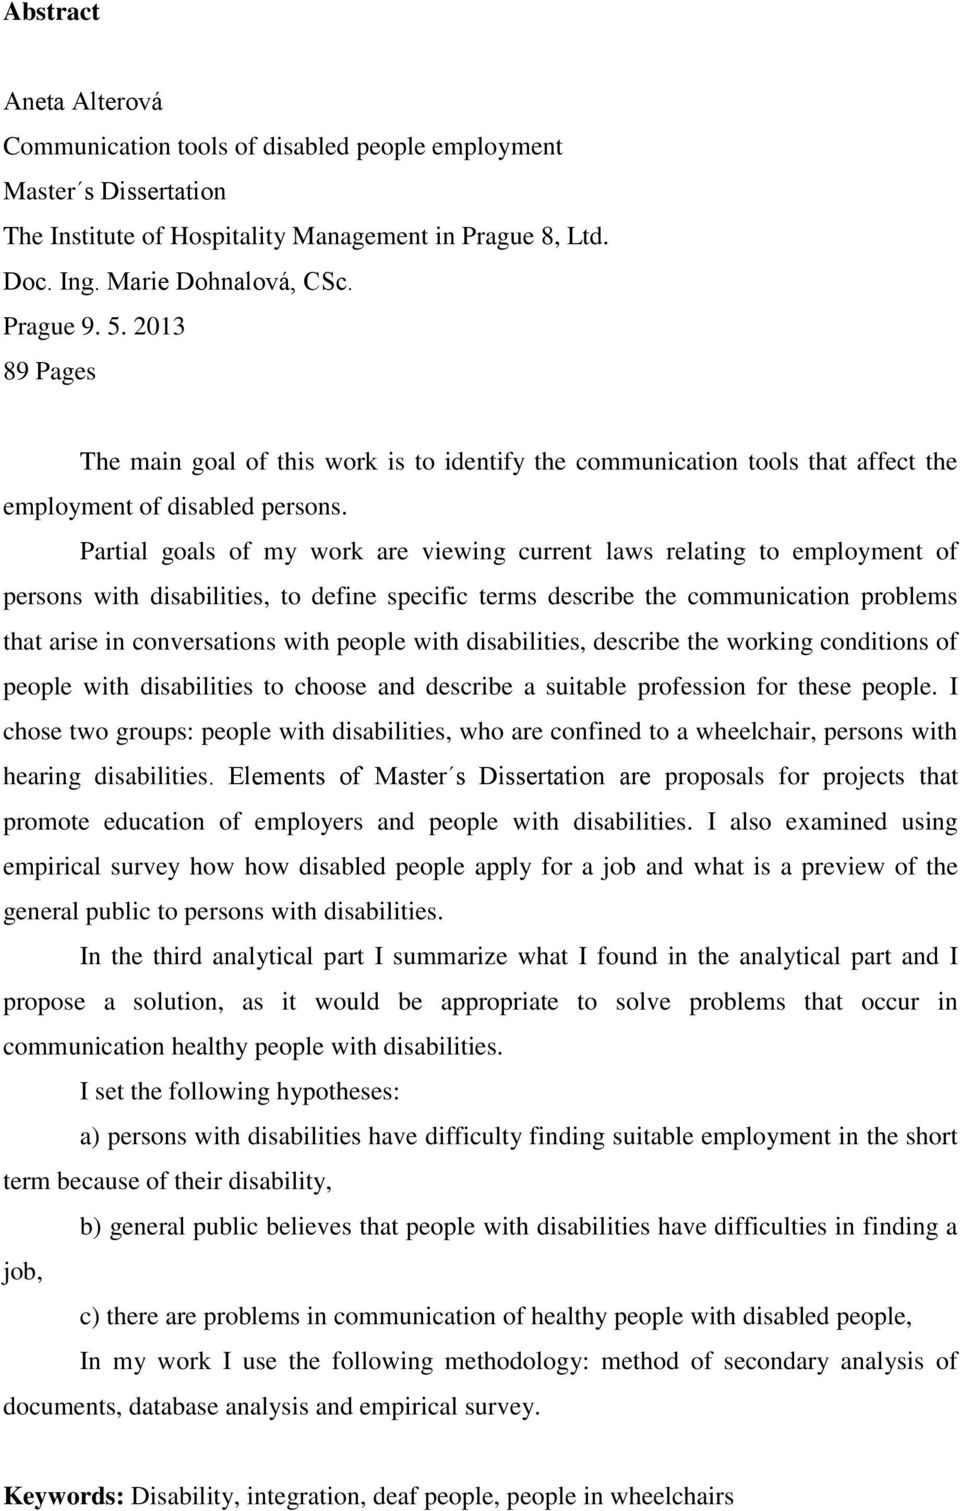 Partial goals of my work are viewing current laws relating to employment of persons with disabilities, to define specific terms describe the communication problems that arise in conversations with